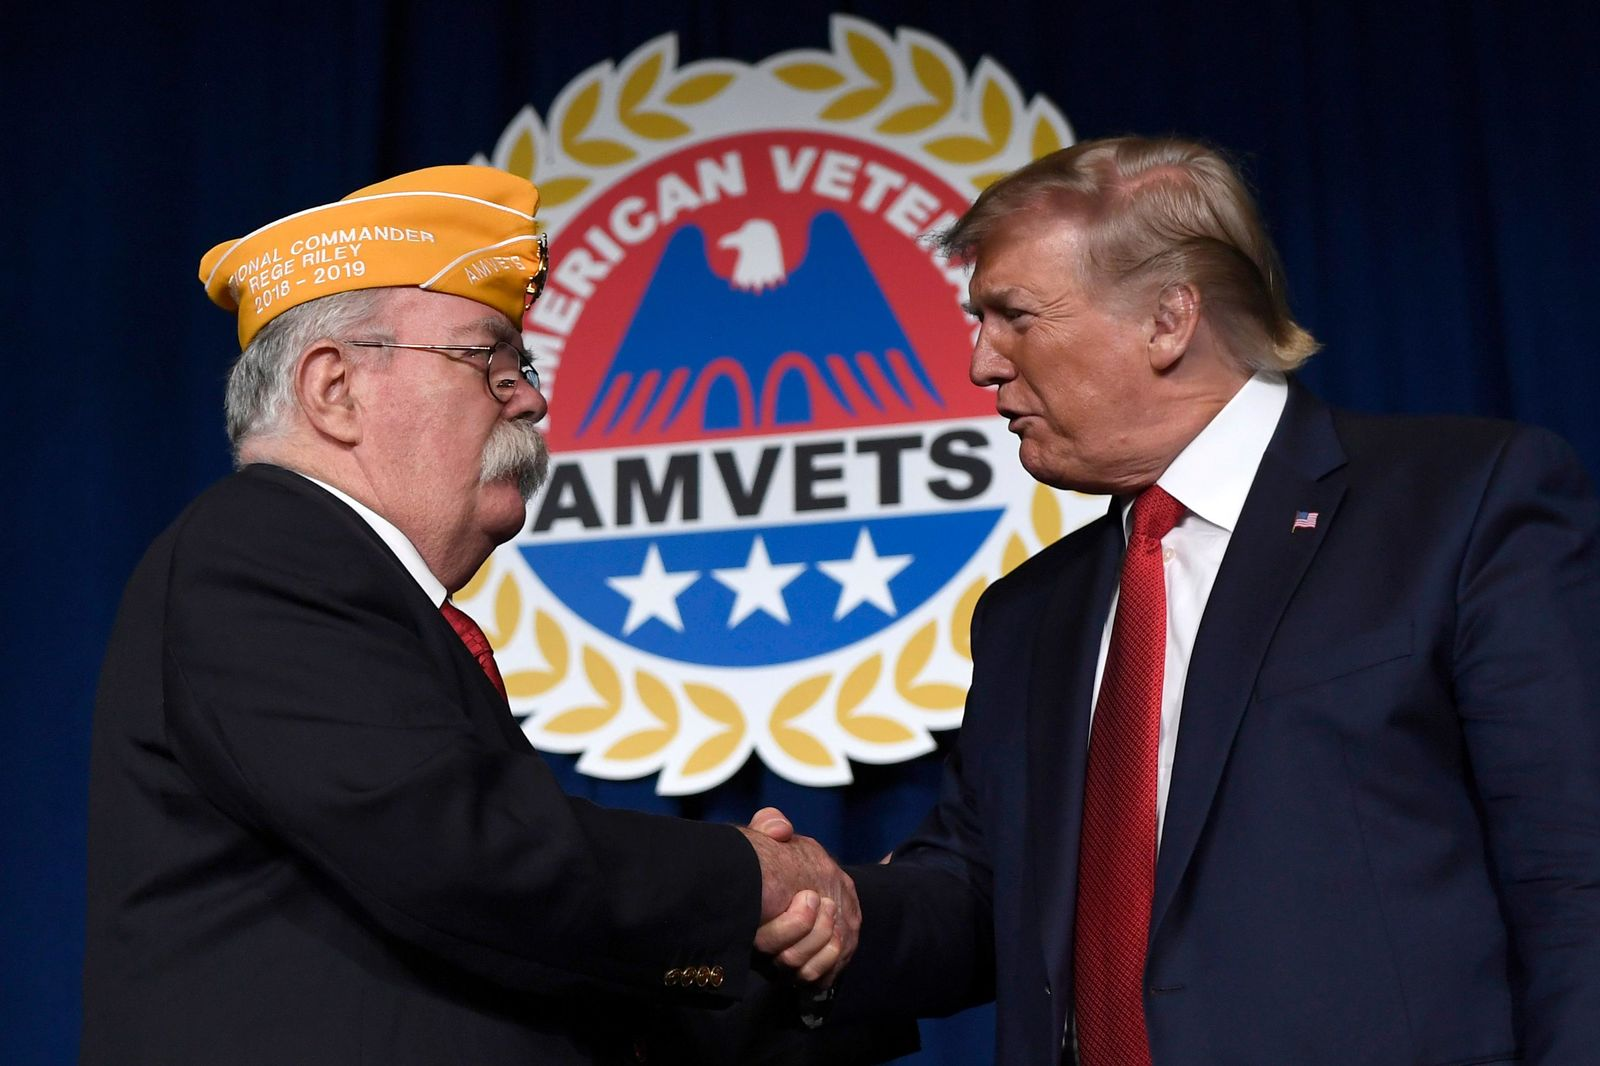 President Donald Trump greets AMVETS national commander Rege Riley at the American Veterans (AMVETS) 75th National Convention in Louisville, Ky., Wednesday, Aug. 21, 2019. (AP Photo/Susan Walsh)